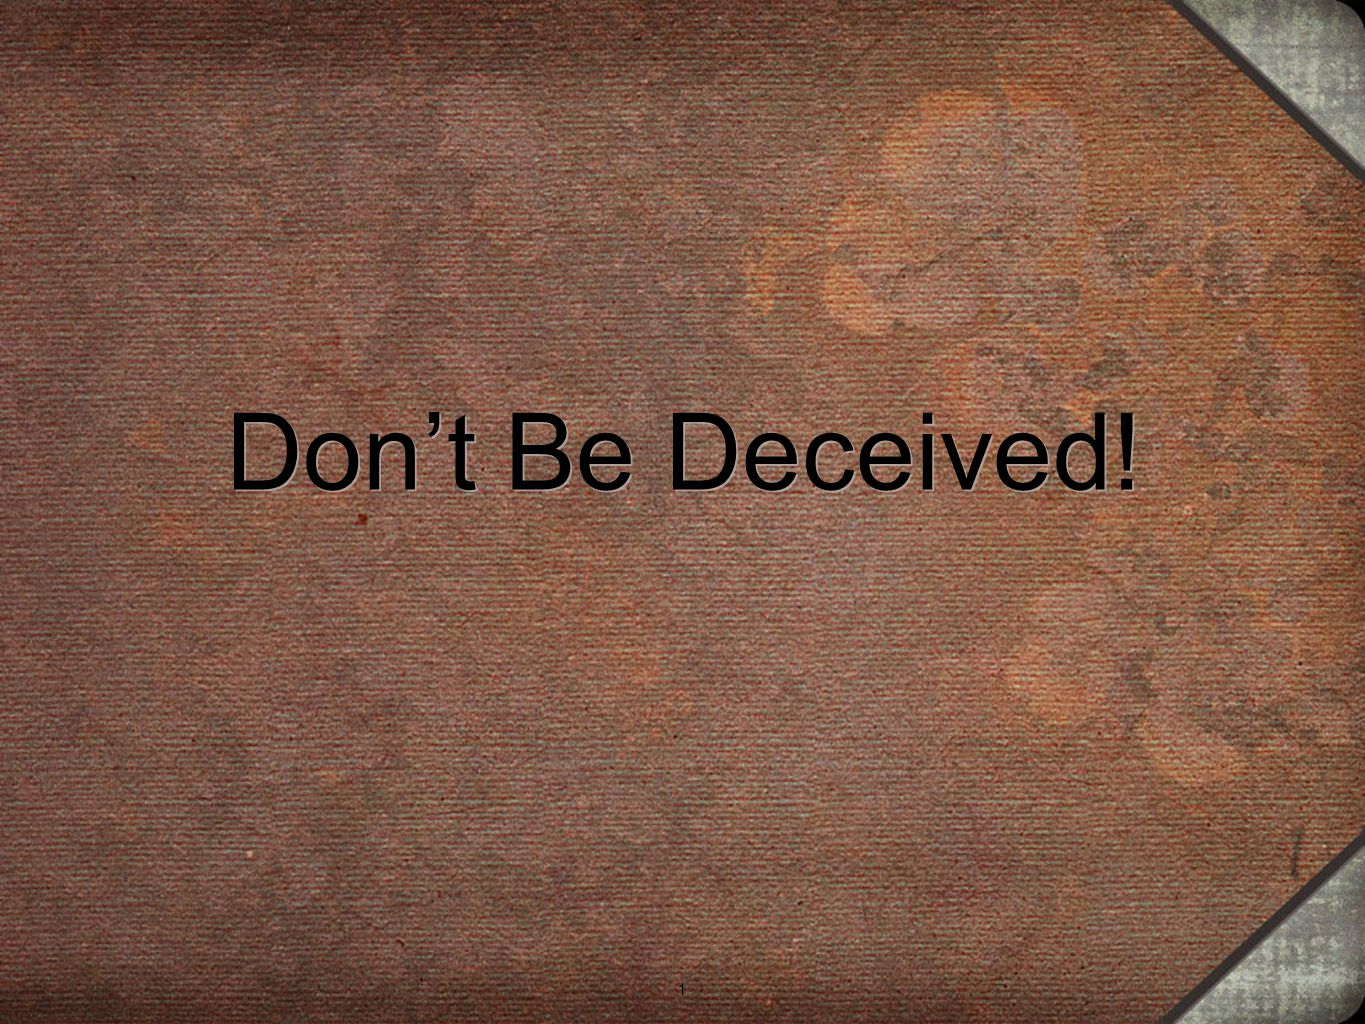 1 Don't Be Deceived! 1